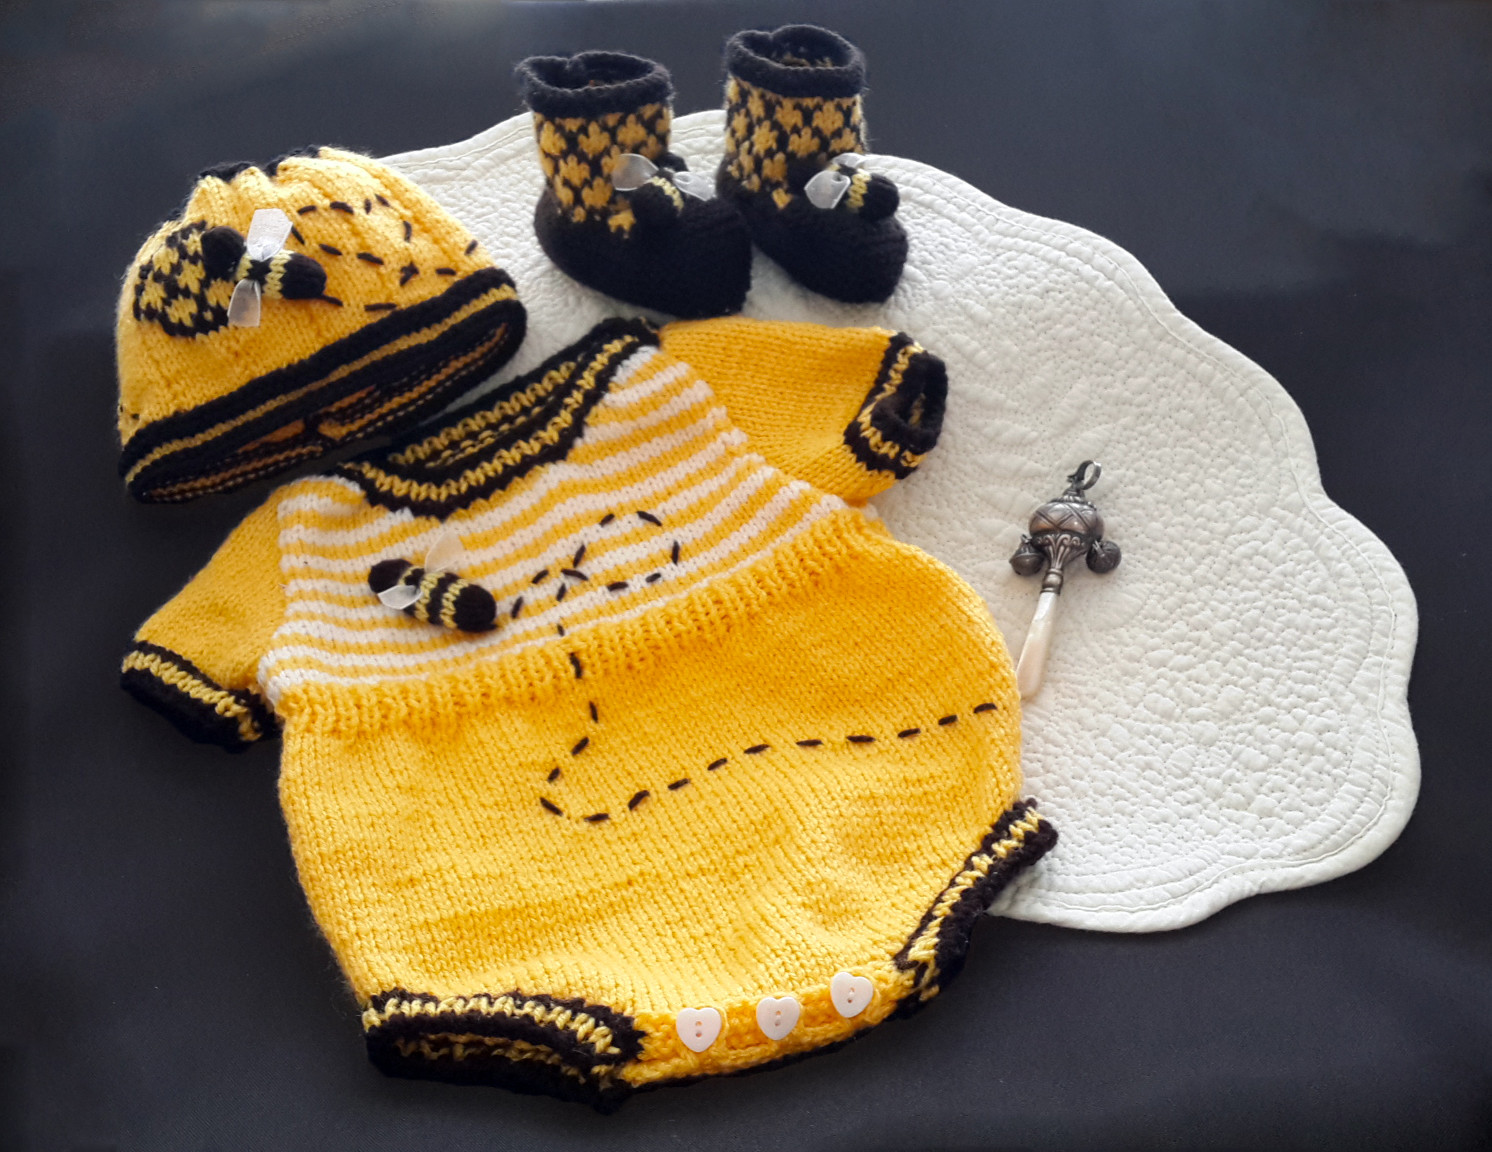 New the Gallery for Baby Boy Crochet Booties Baby Bee Yarn Crochet Patterns Of Amazing 49 Photos Baby Bee Yarn Crochet Patterns